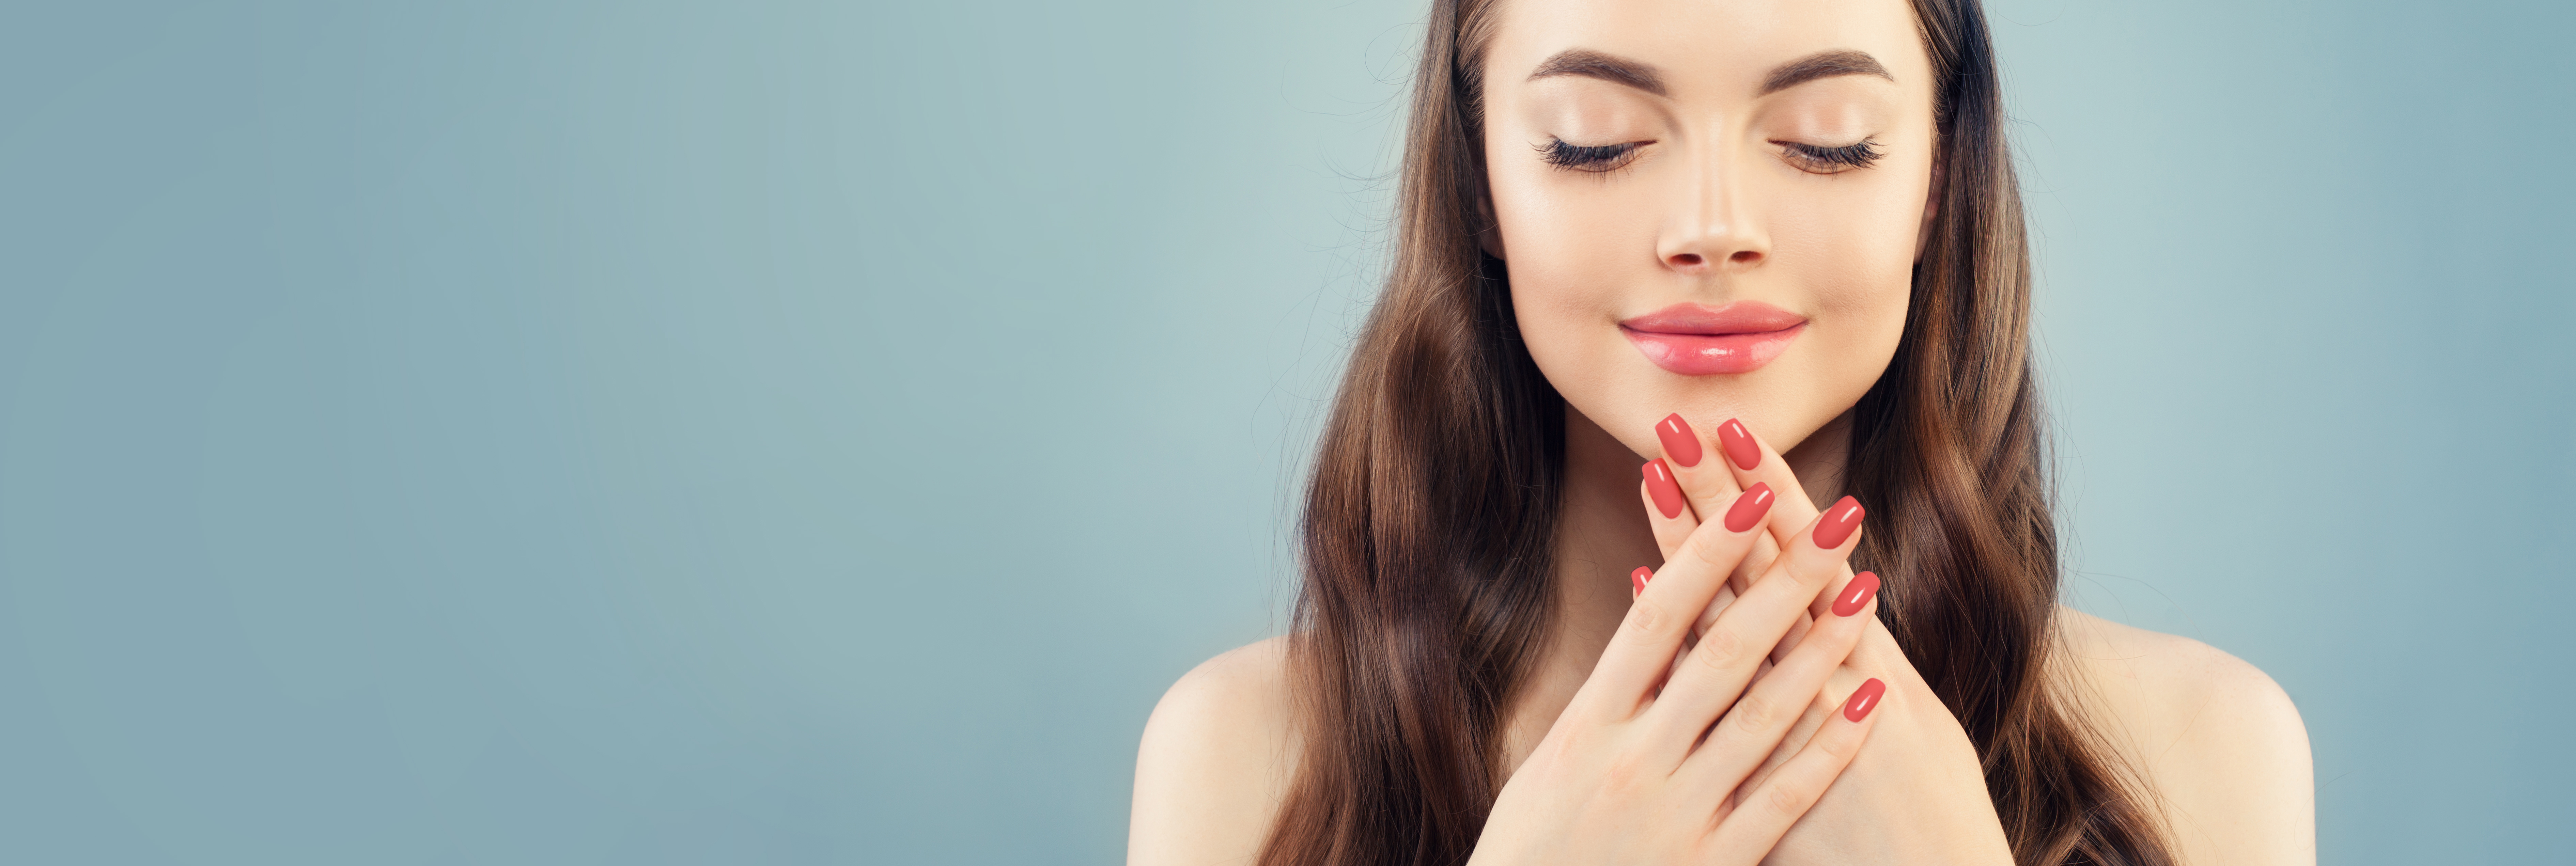 How to make your hands look 10 years younger